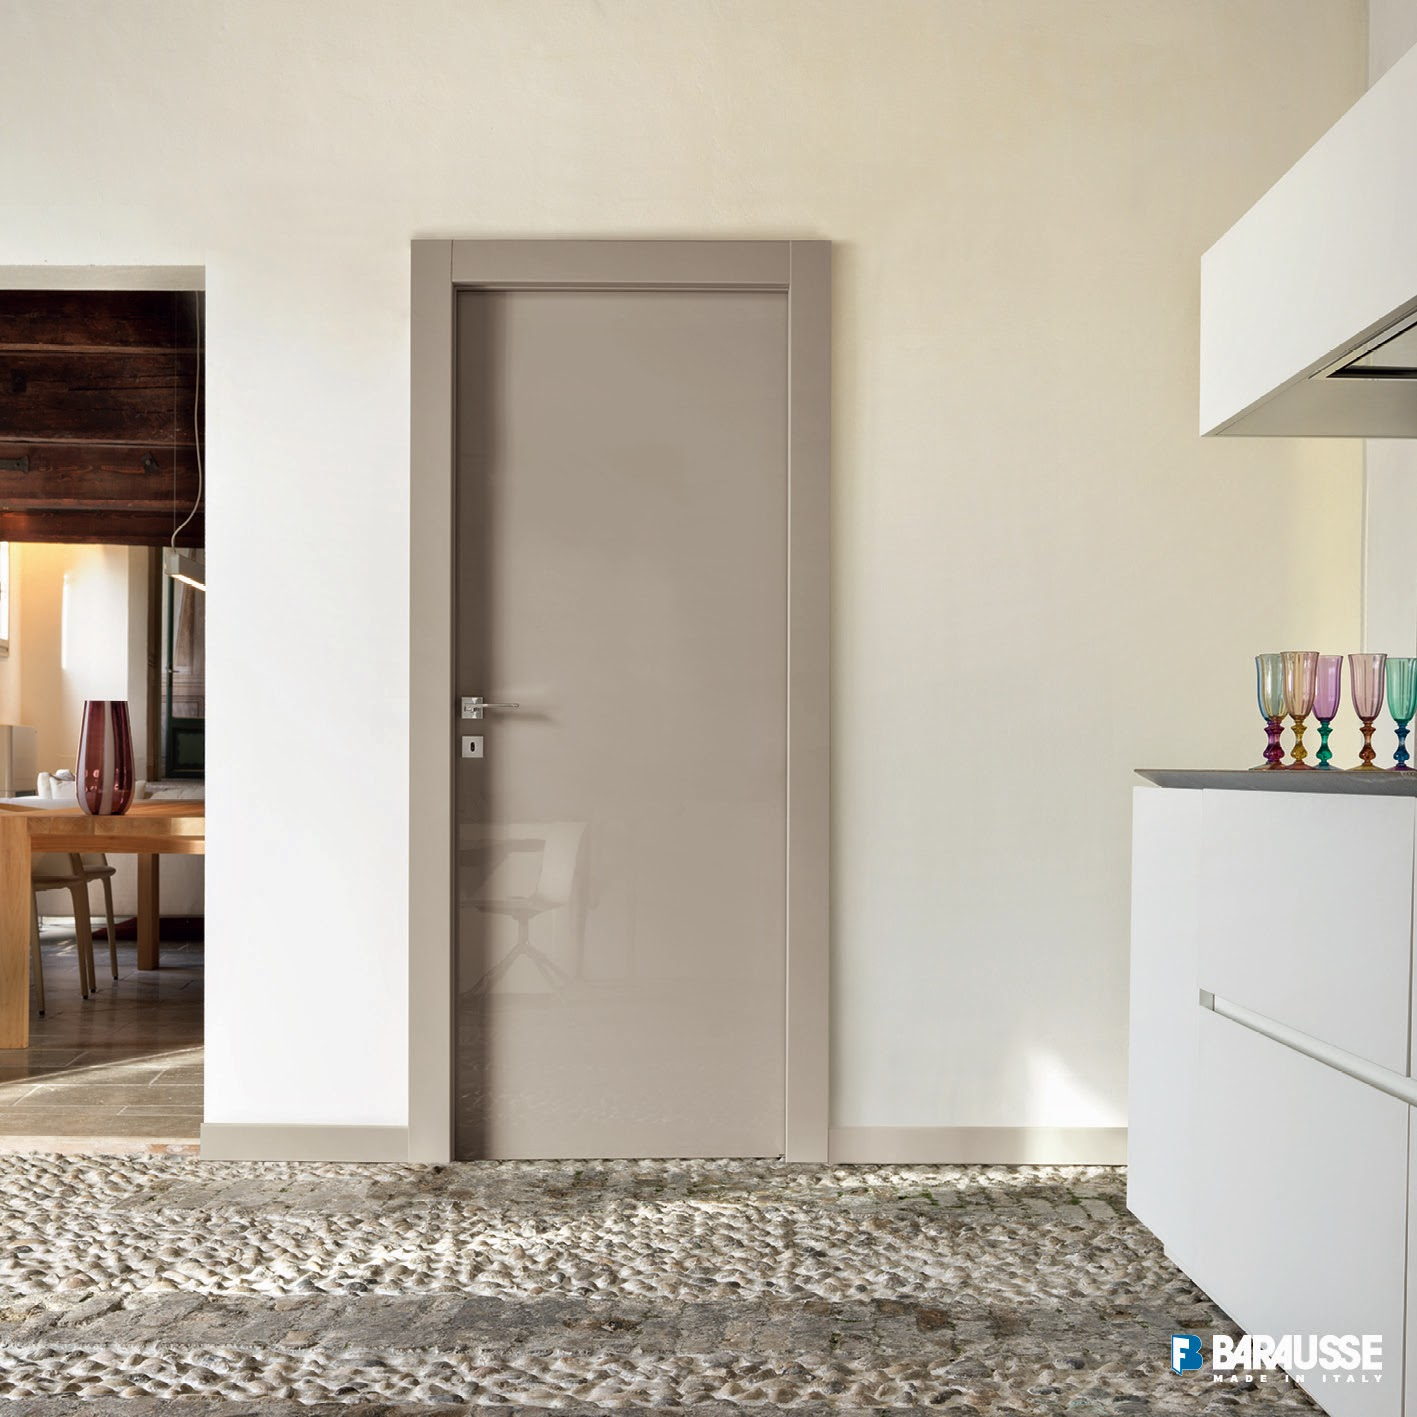 Luxury Italian Interior Doors By Barausse. Visit Our NYC Showroom For More  De.